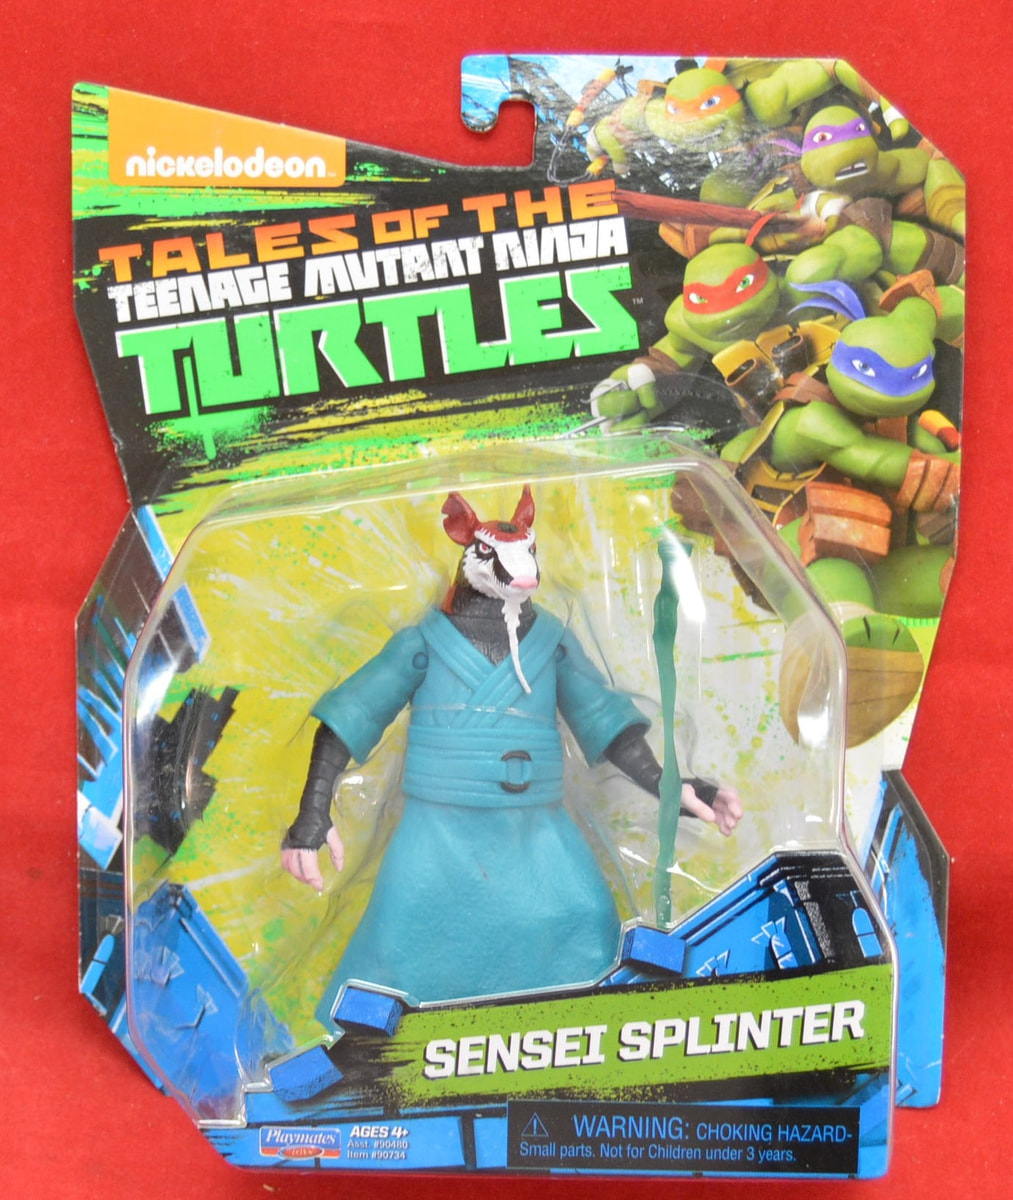 Hot Spot Collectibles And Toys Sensei Splinter Figure